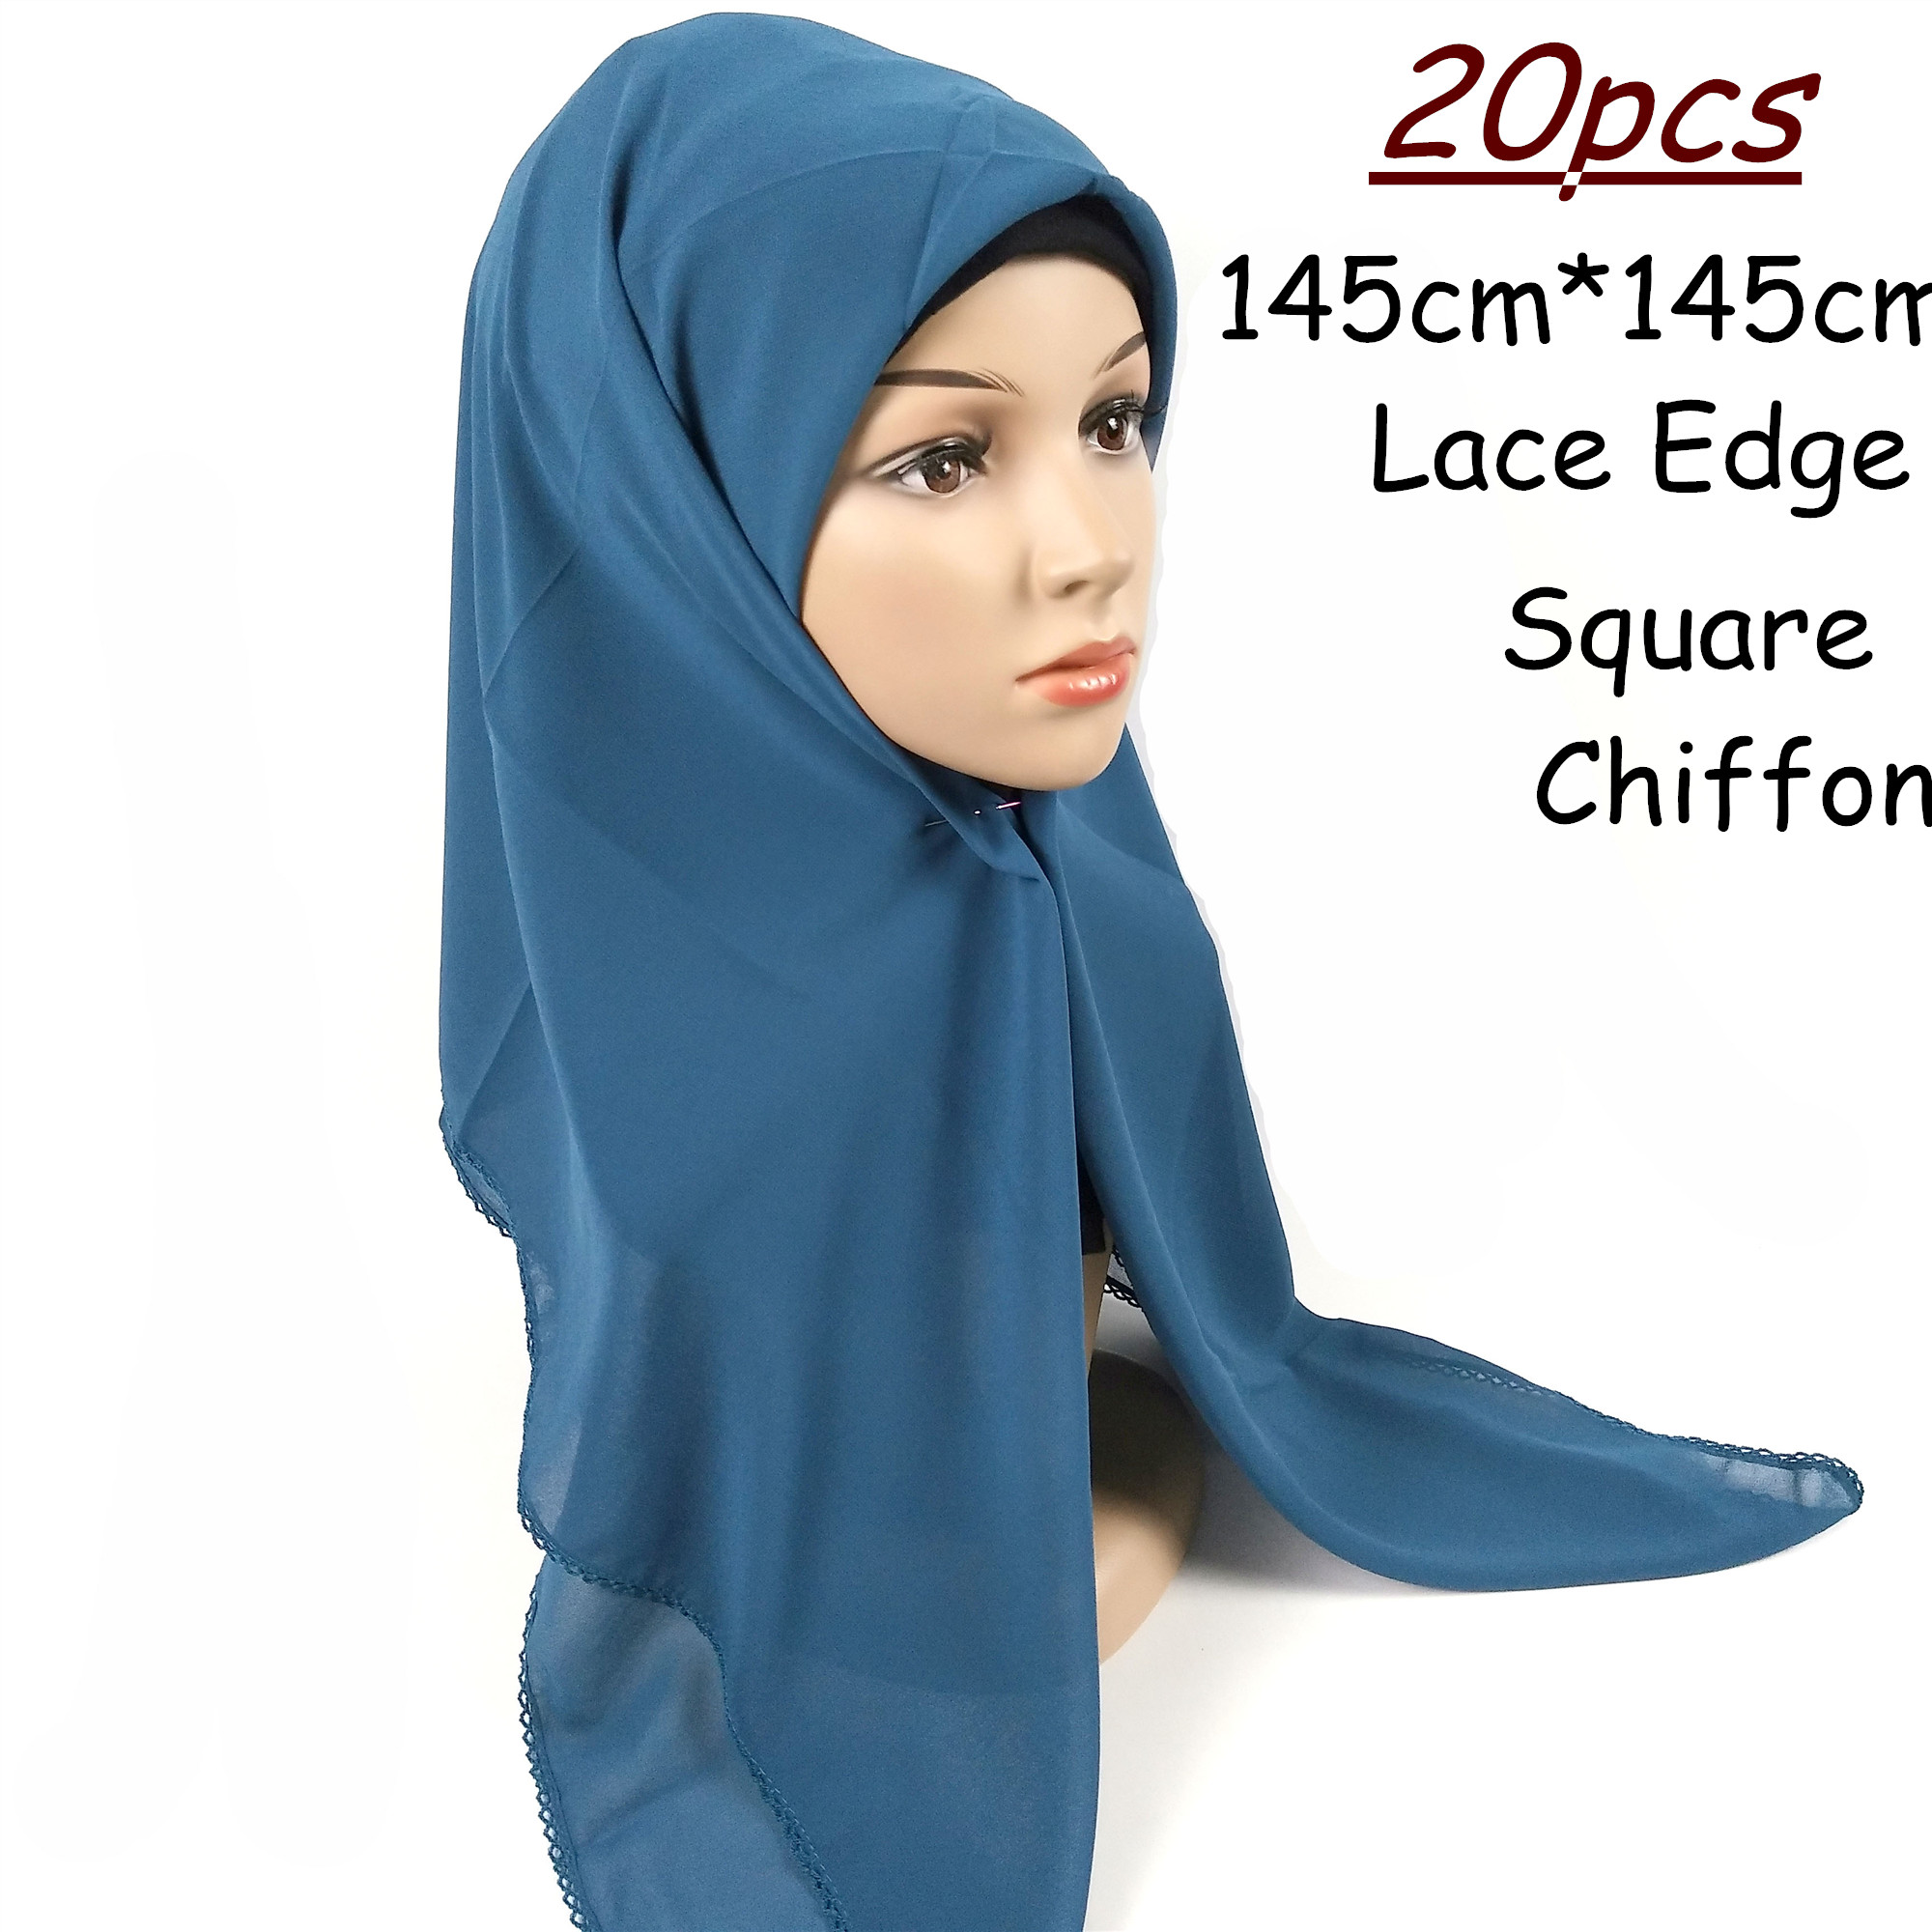 H11 20pcs High quality square chiffon hijab with lace edge 145 *145cm   wrap   shawls women   scarves     scarf     wrap   headband